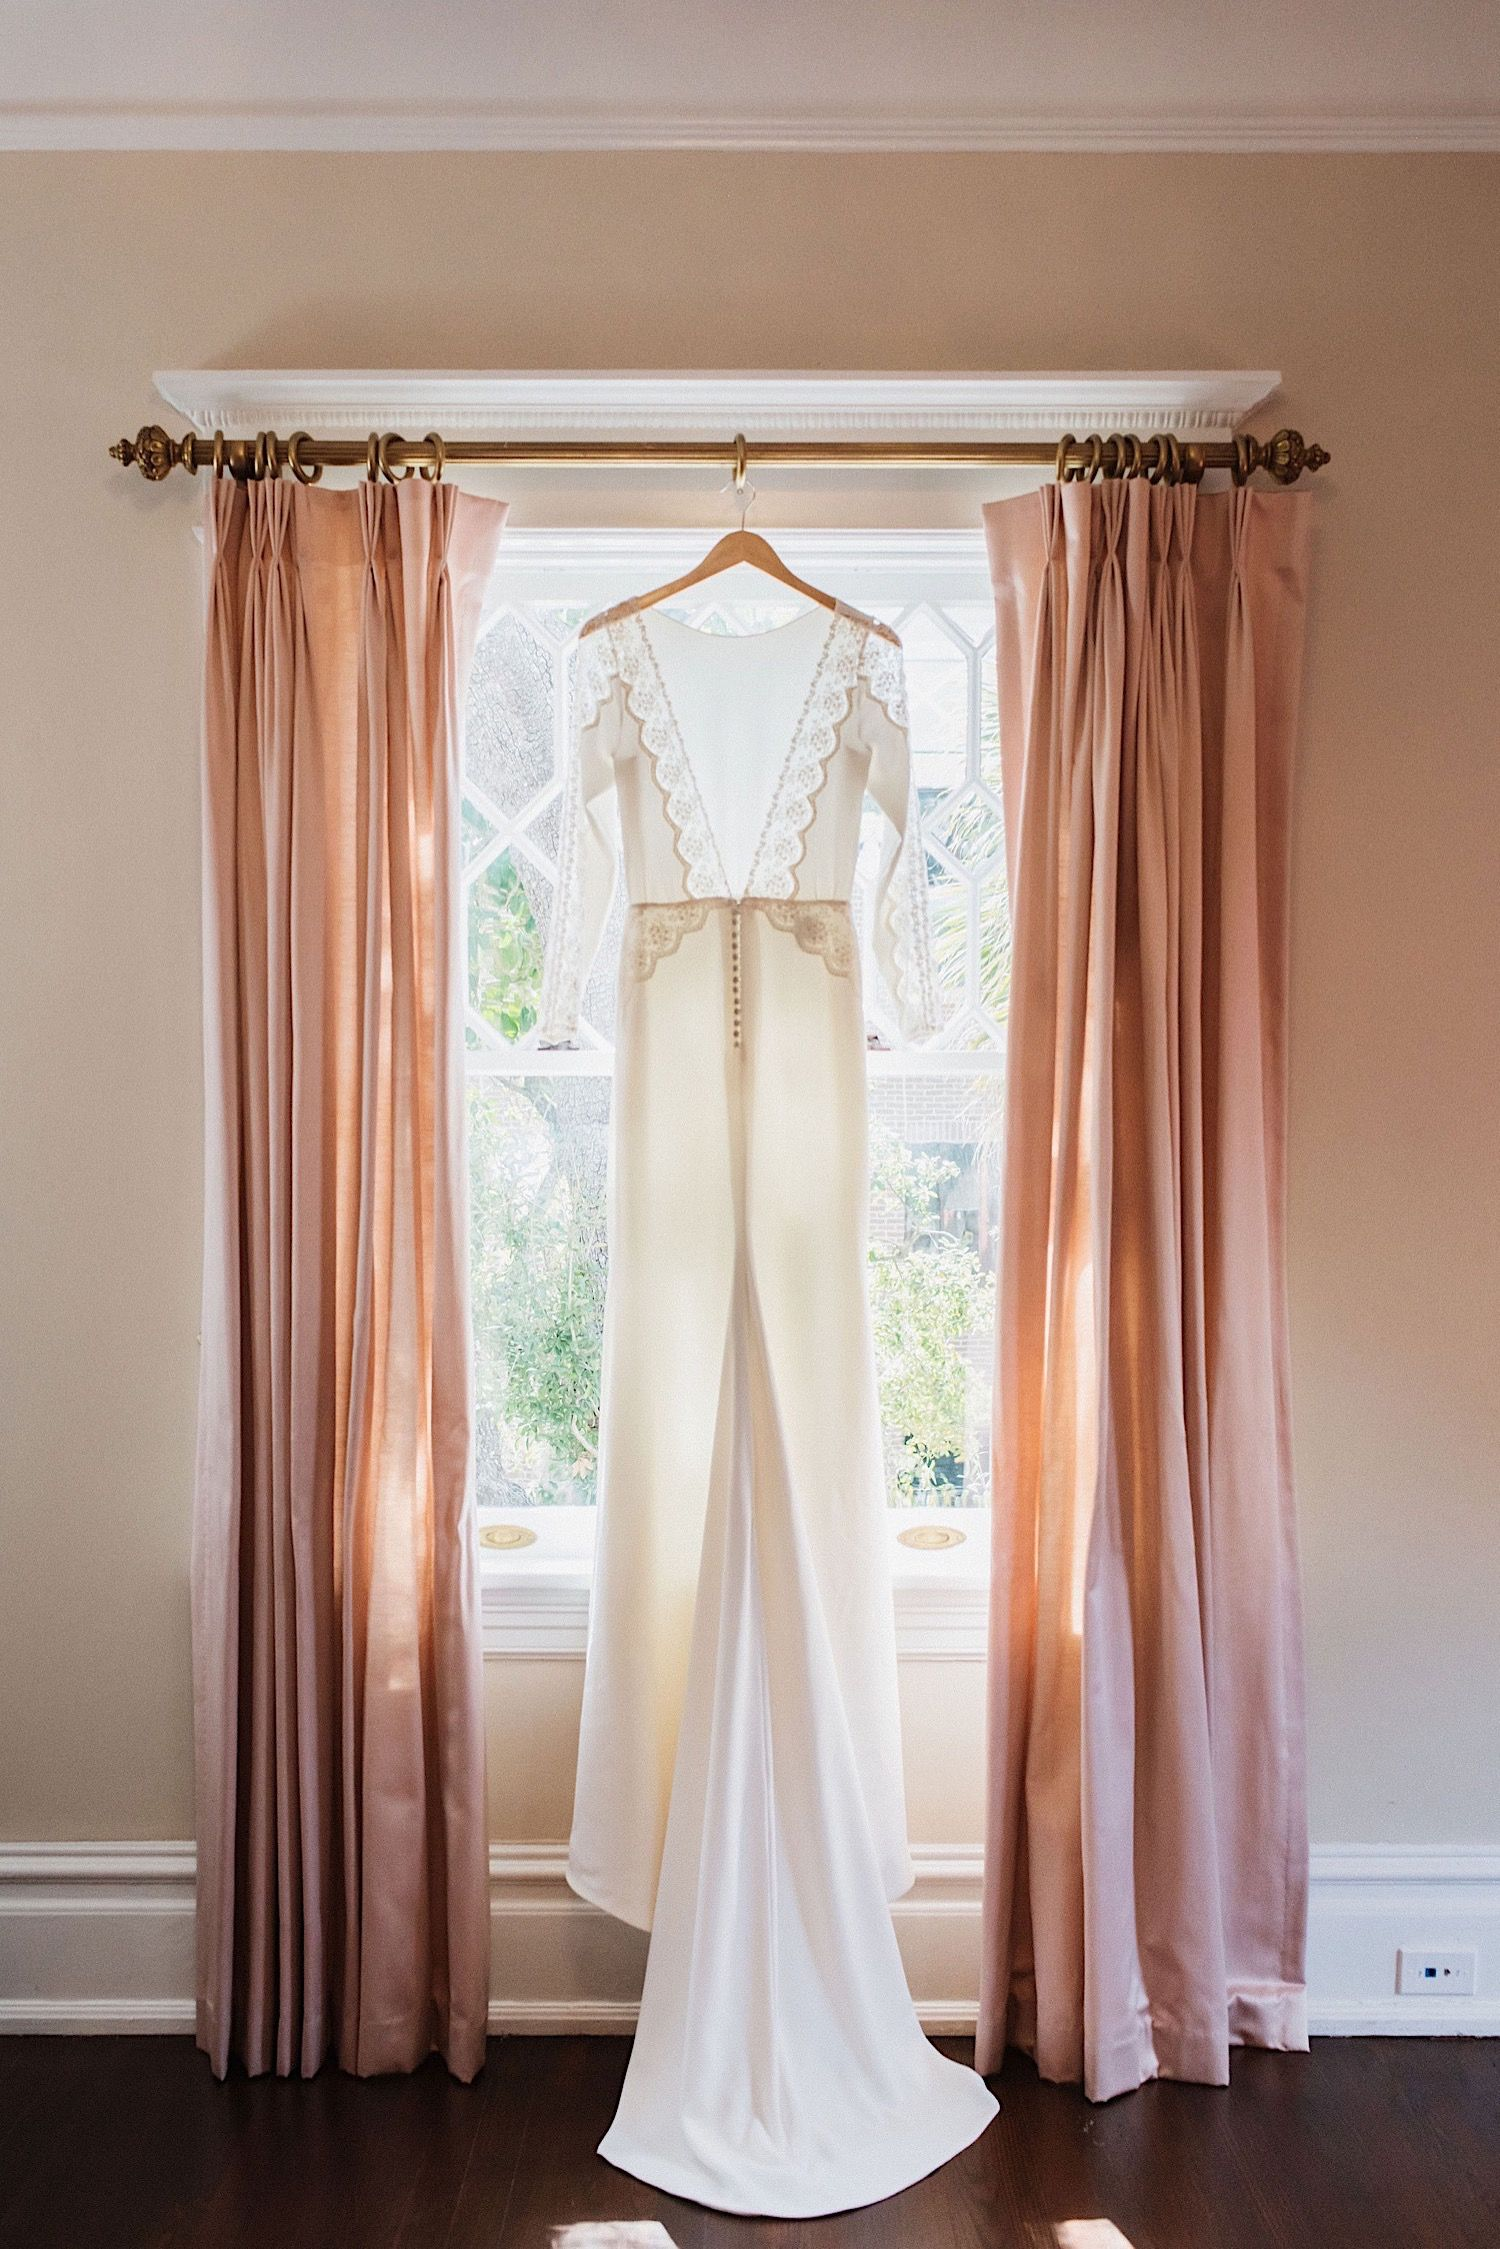 Wedding dress hanging in the window with pink curtains at the Orlo , a wedding venue in Tampa, FLorida